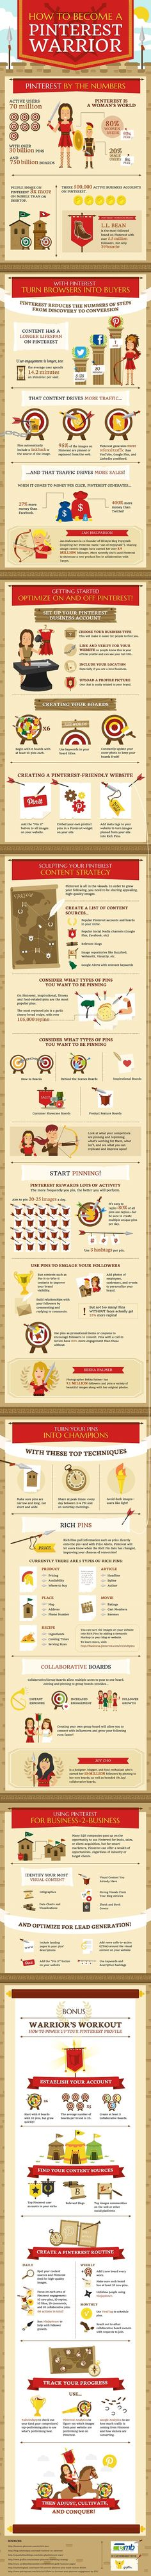 Tips For Using Pinterest For Business [The Saturday Infographic]